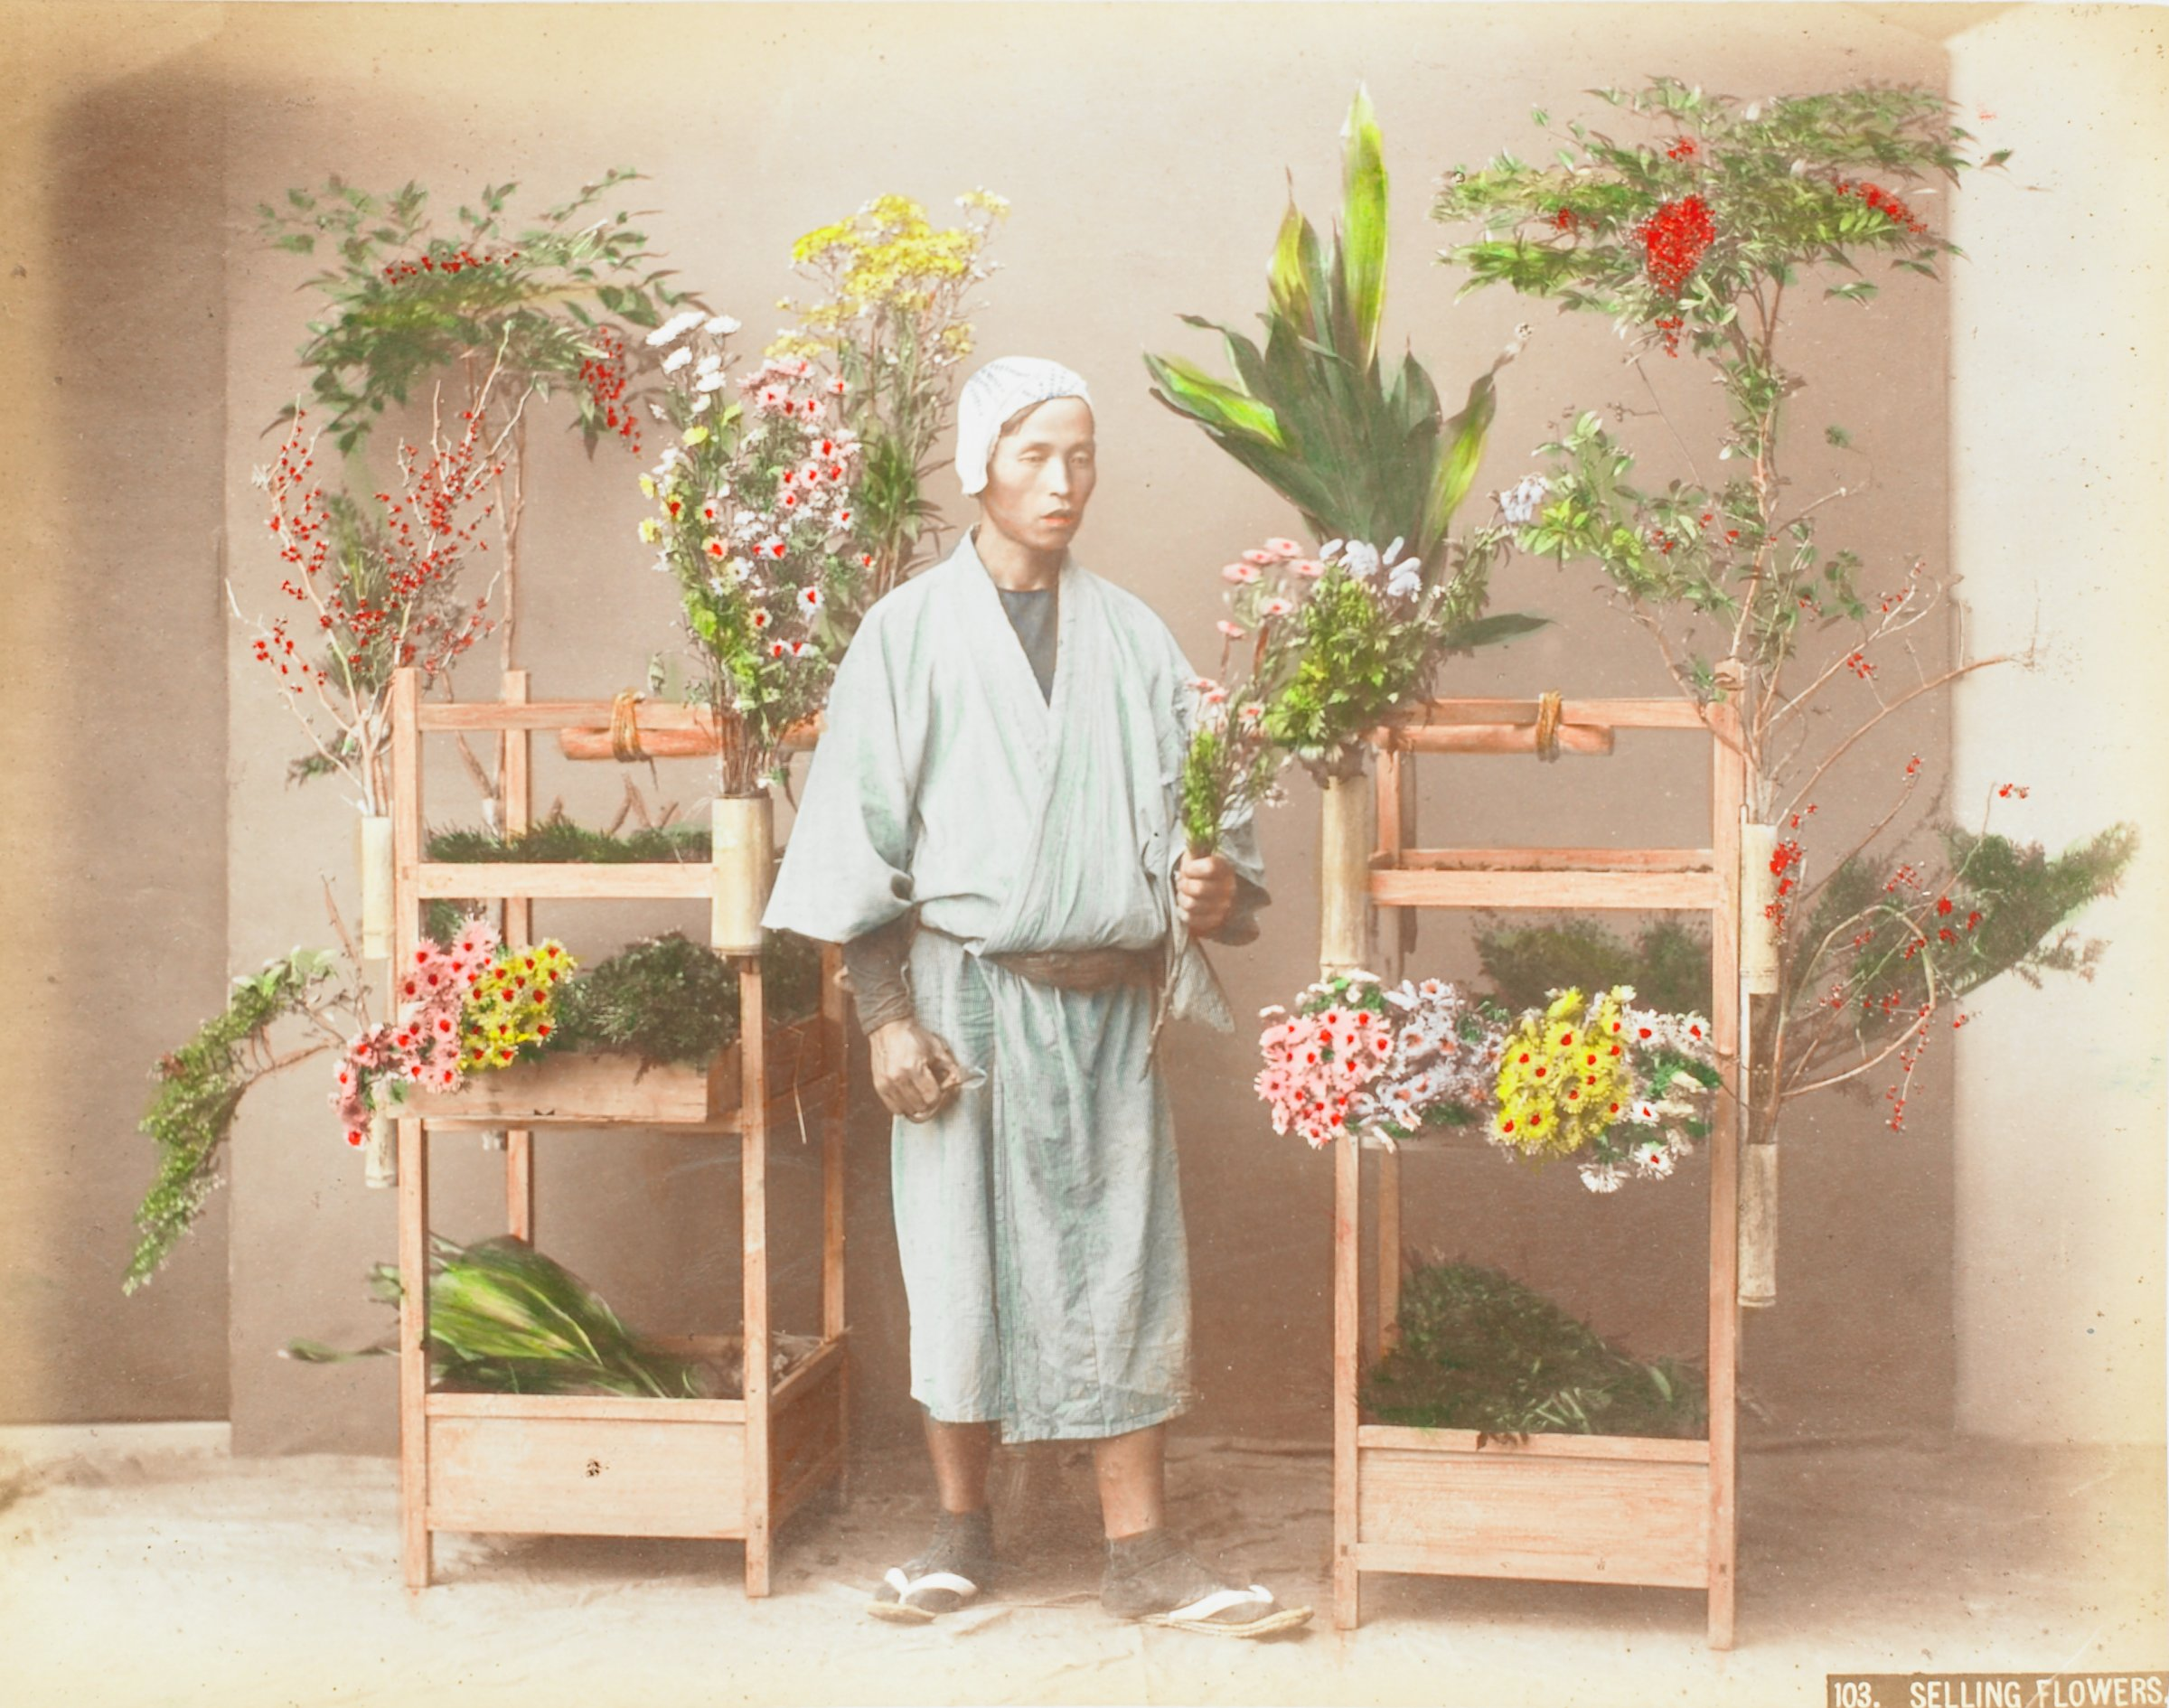 Selling Flowers (.20, recto); Ferry Boat (.21, verso), Attributed to Kusakabe Kimbei, hand-colored albumen prints mounted to album page